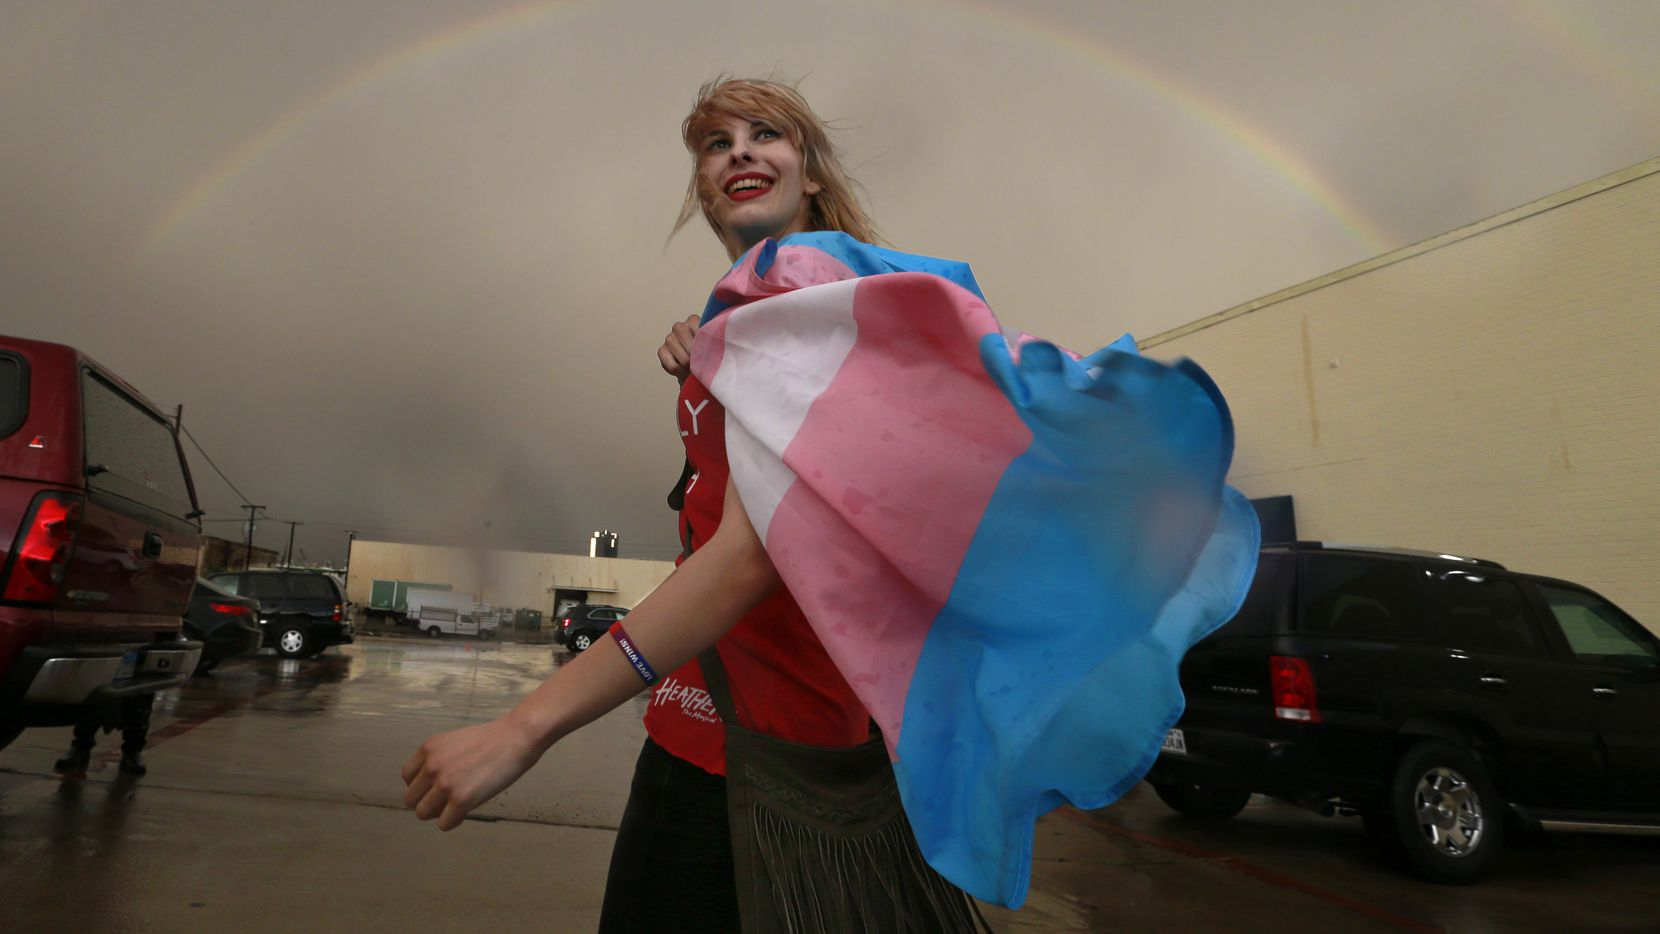 Following a public Fort Worth ISD meeting, at which transgender policies in schools were discussed, Alison Francis of Hurst smiles as a full rainbow appears over the Fort Worth ISD Board of Education complex in Fort Worth.  She said she is part of a transgender couple. Earlier Lt. Gov. Dan Patrick addressed the media on Fort Worth Superintendent Kent Scribner's policy to allow transgender students comfortable access to bathrooms.